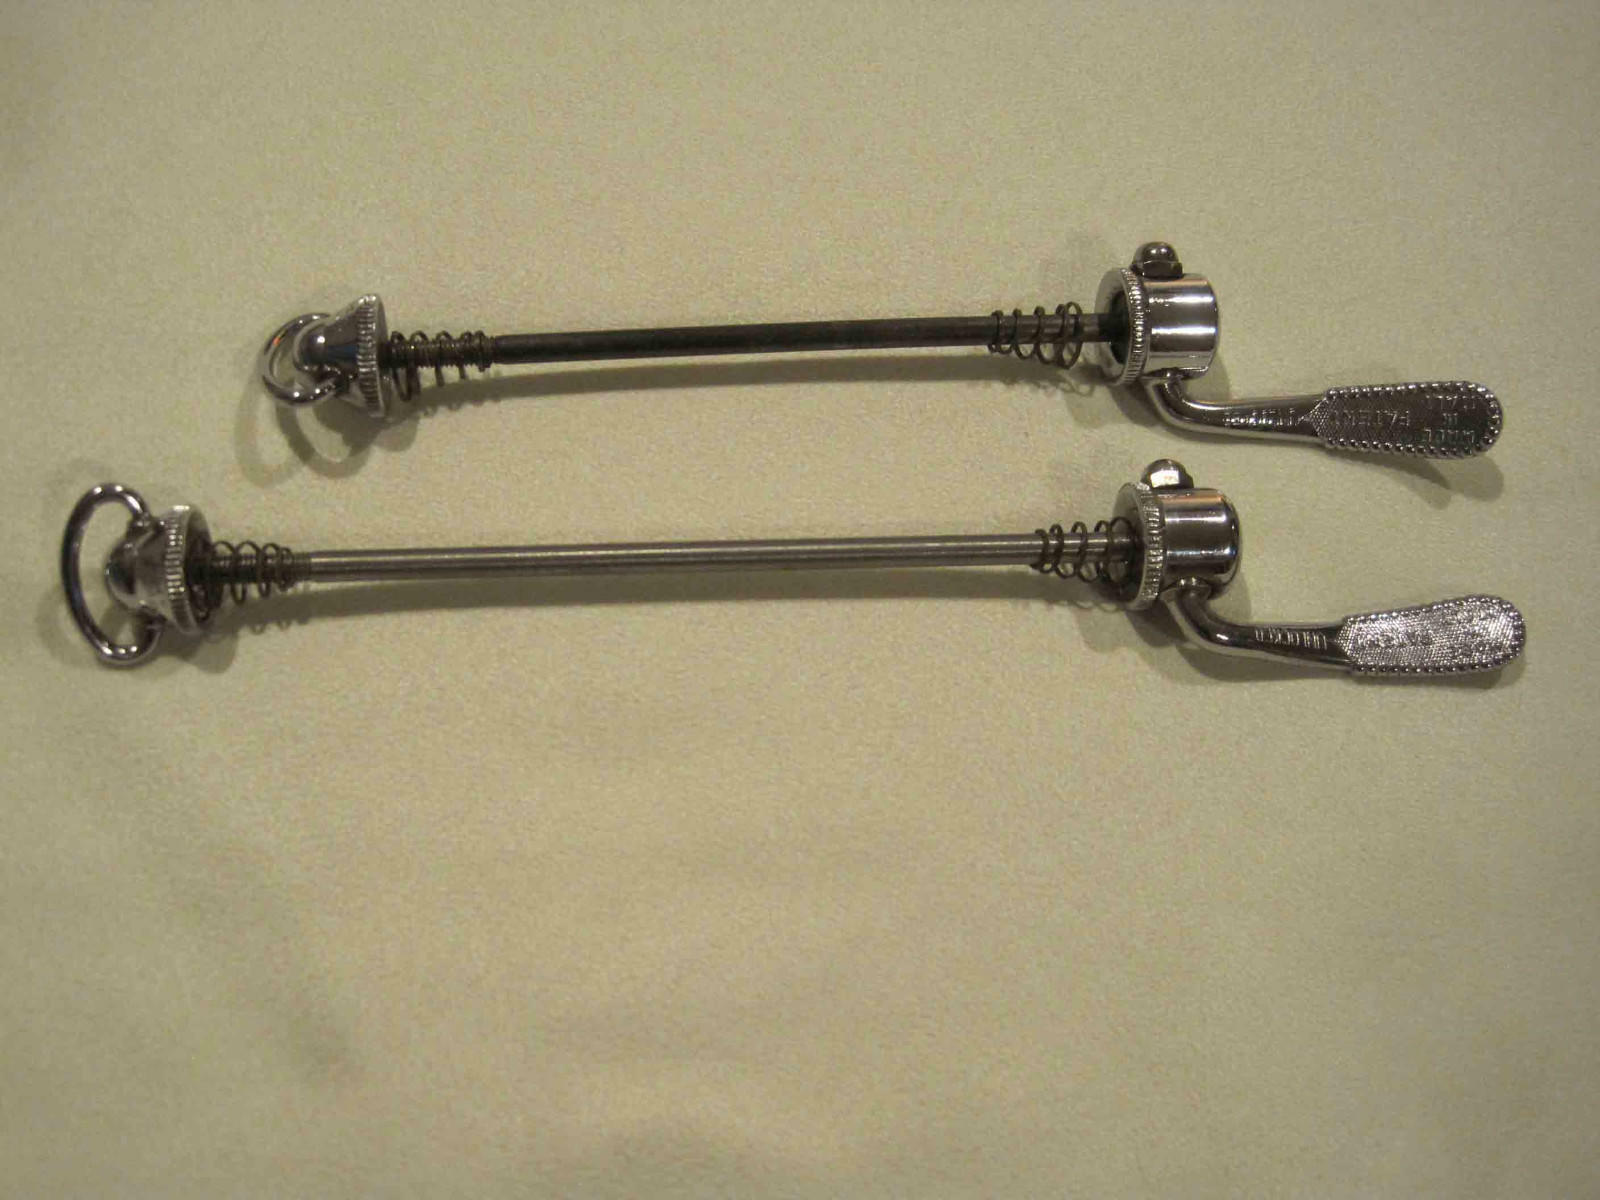 Brev Campagnolo Super Record QR Skewer Set w  Cone Springs and End Rings  waiting for you